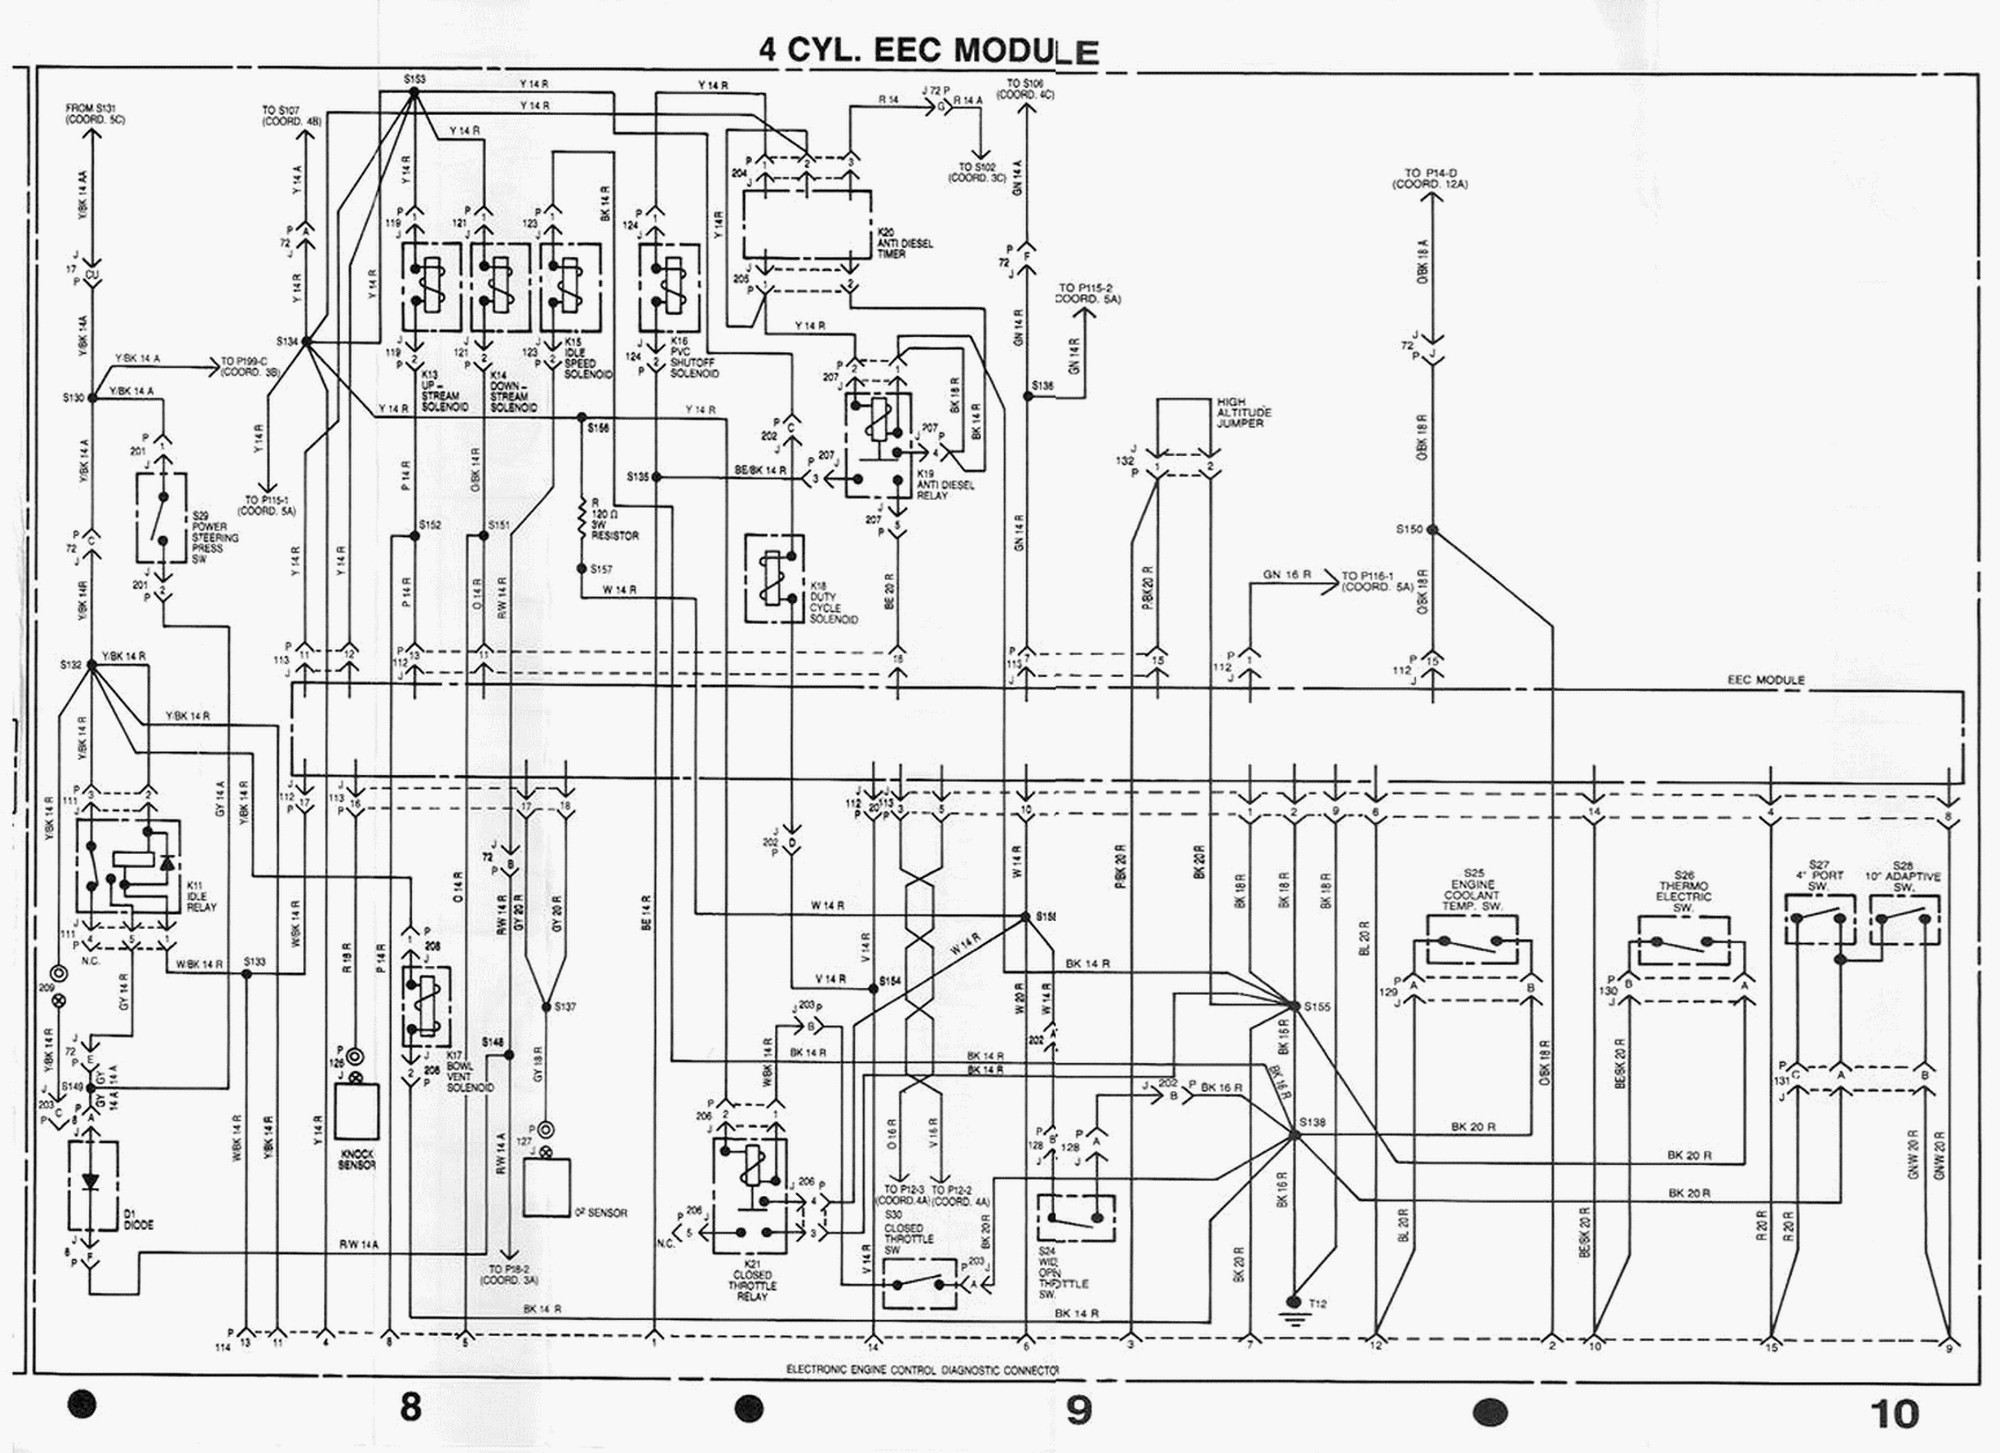 Jeep Cj Wiring Diagram Help With Yj Fuse Box. Jeep. Auto